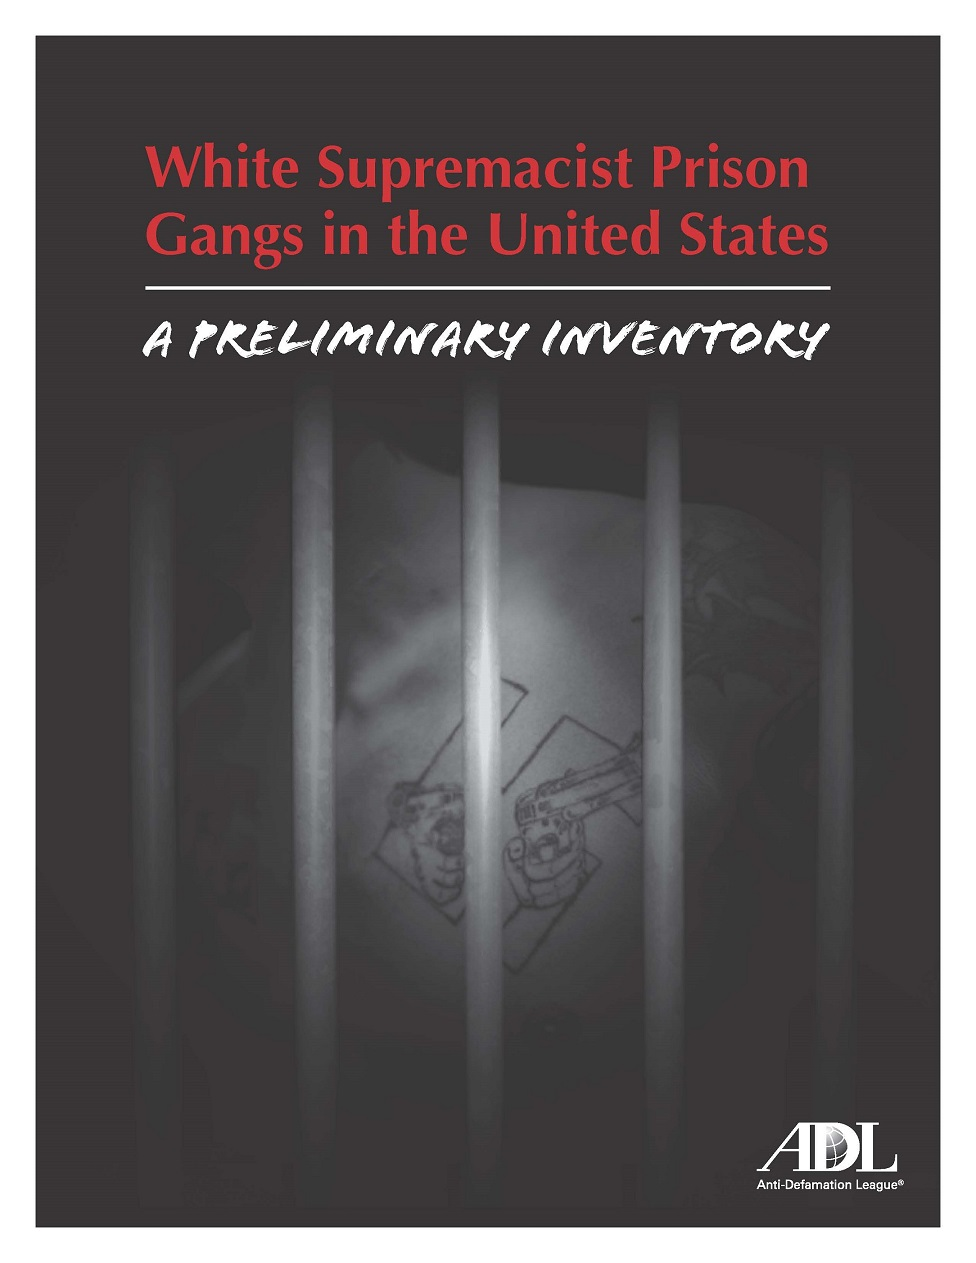 White Supremacist Prison Gang Report THUMBNAIL